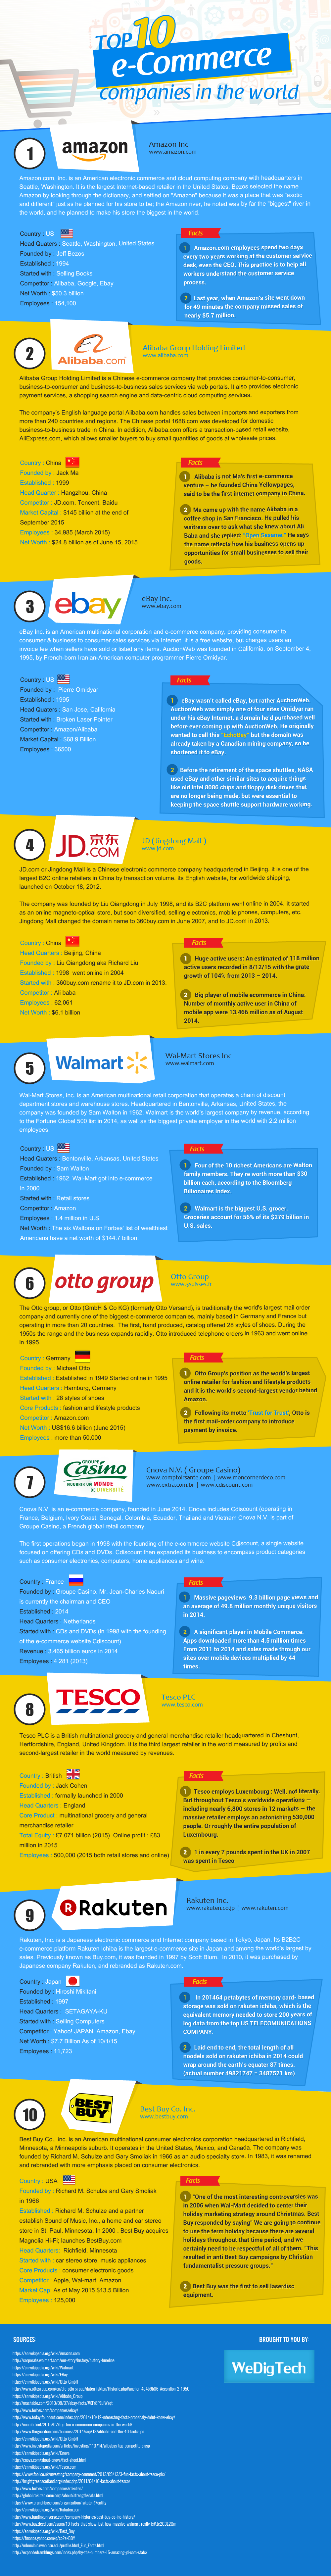 Top 10 eCommerce Companies in the World #infographic